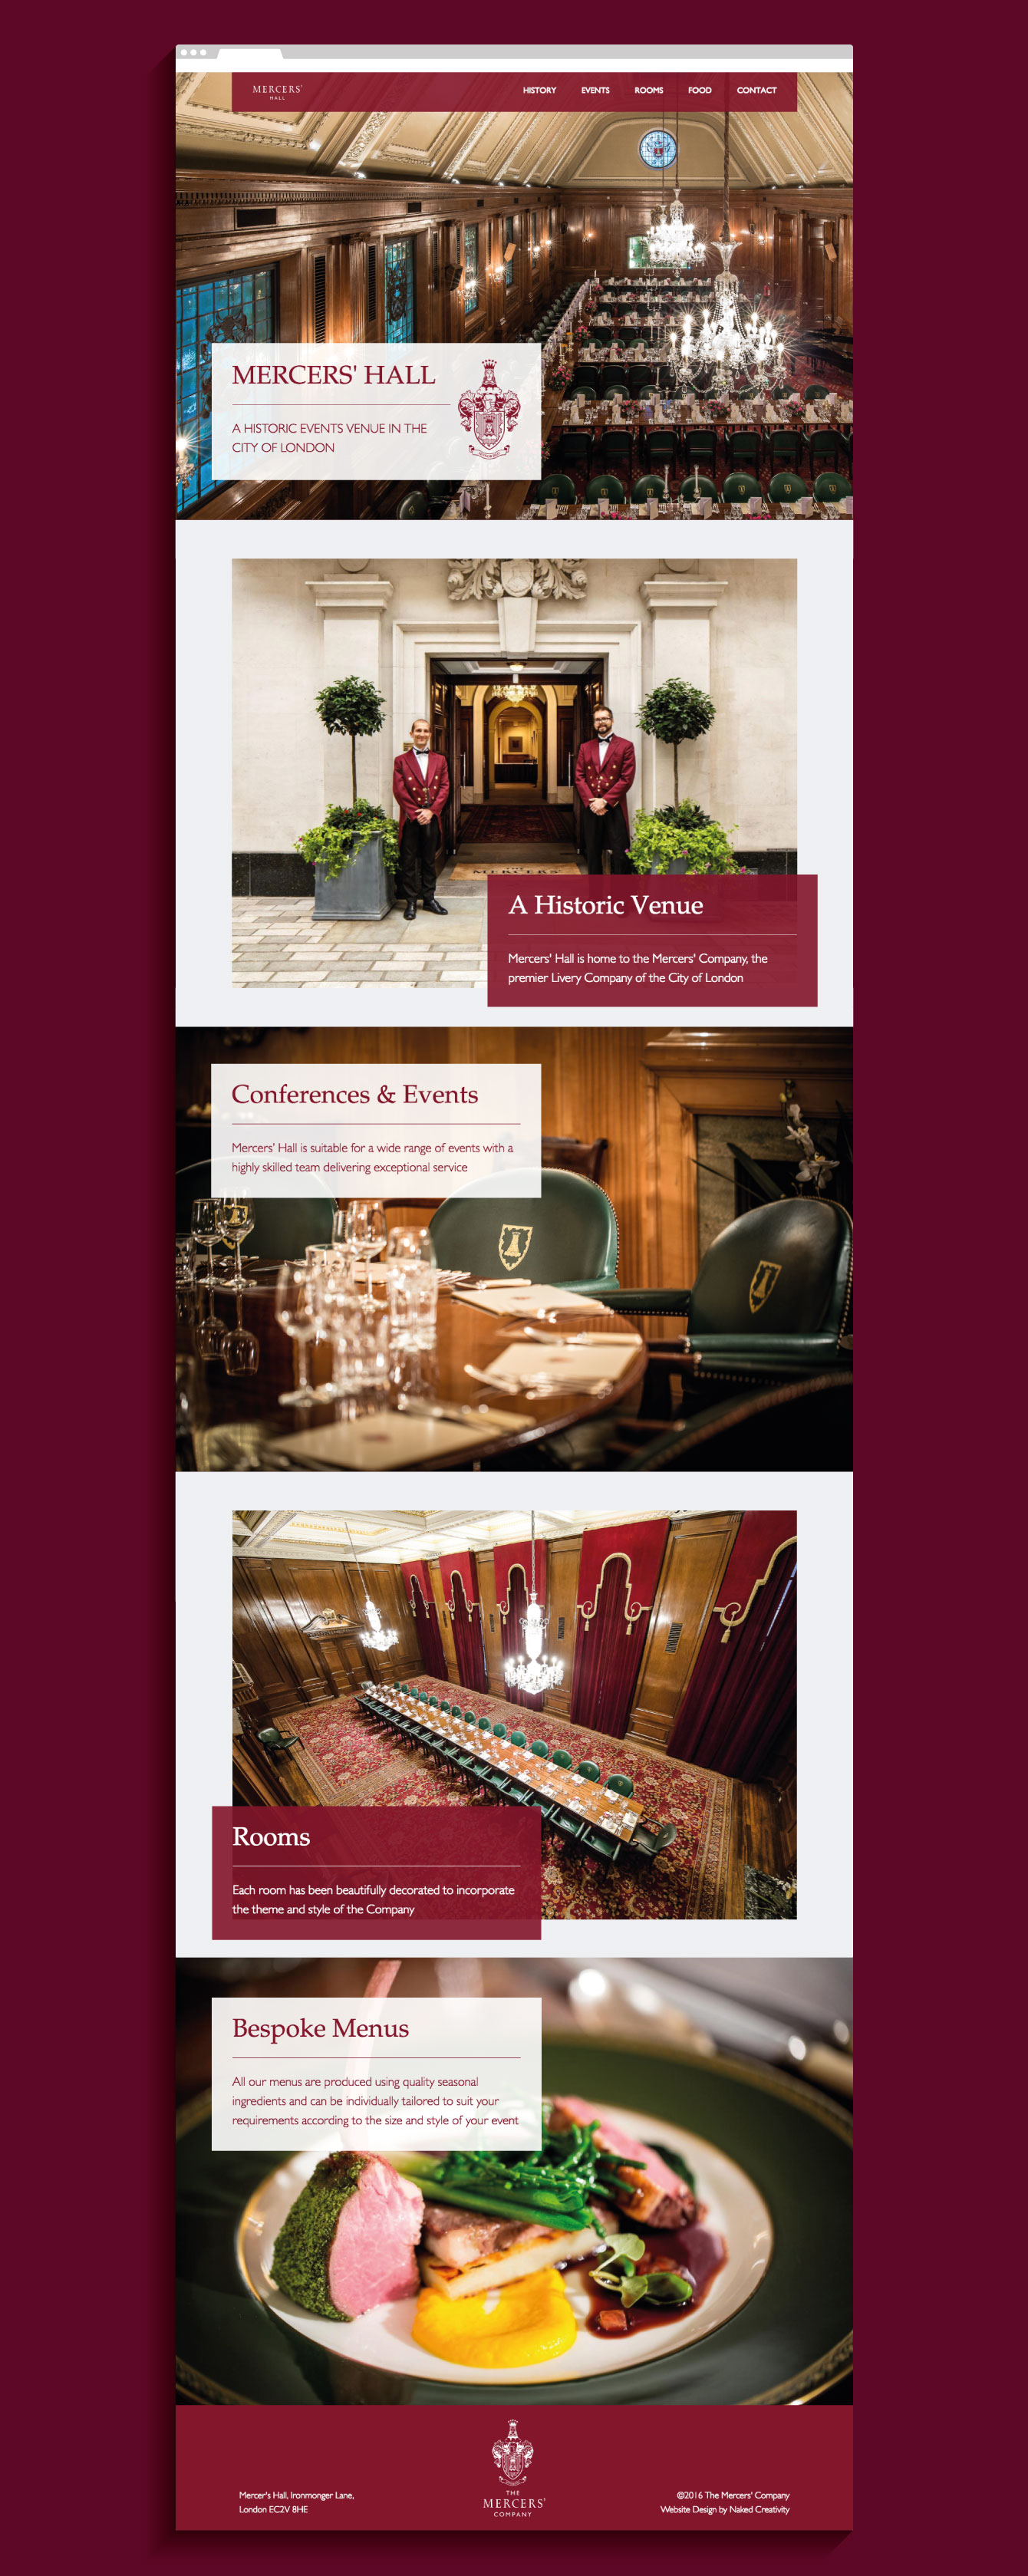 The Mercers' Hall website homepage - desktop